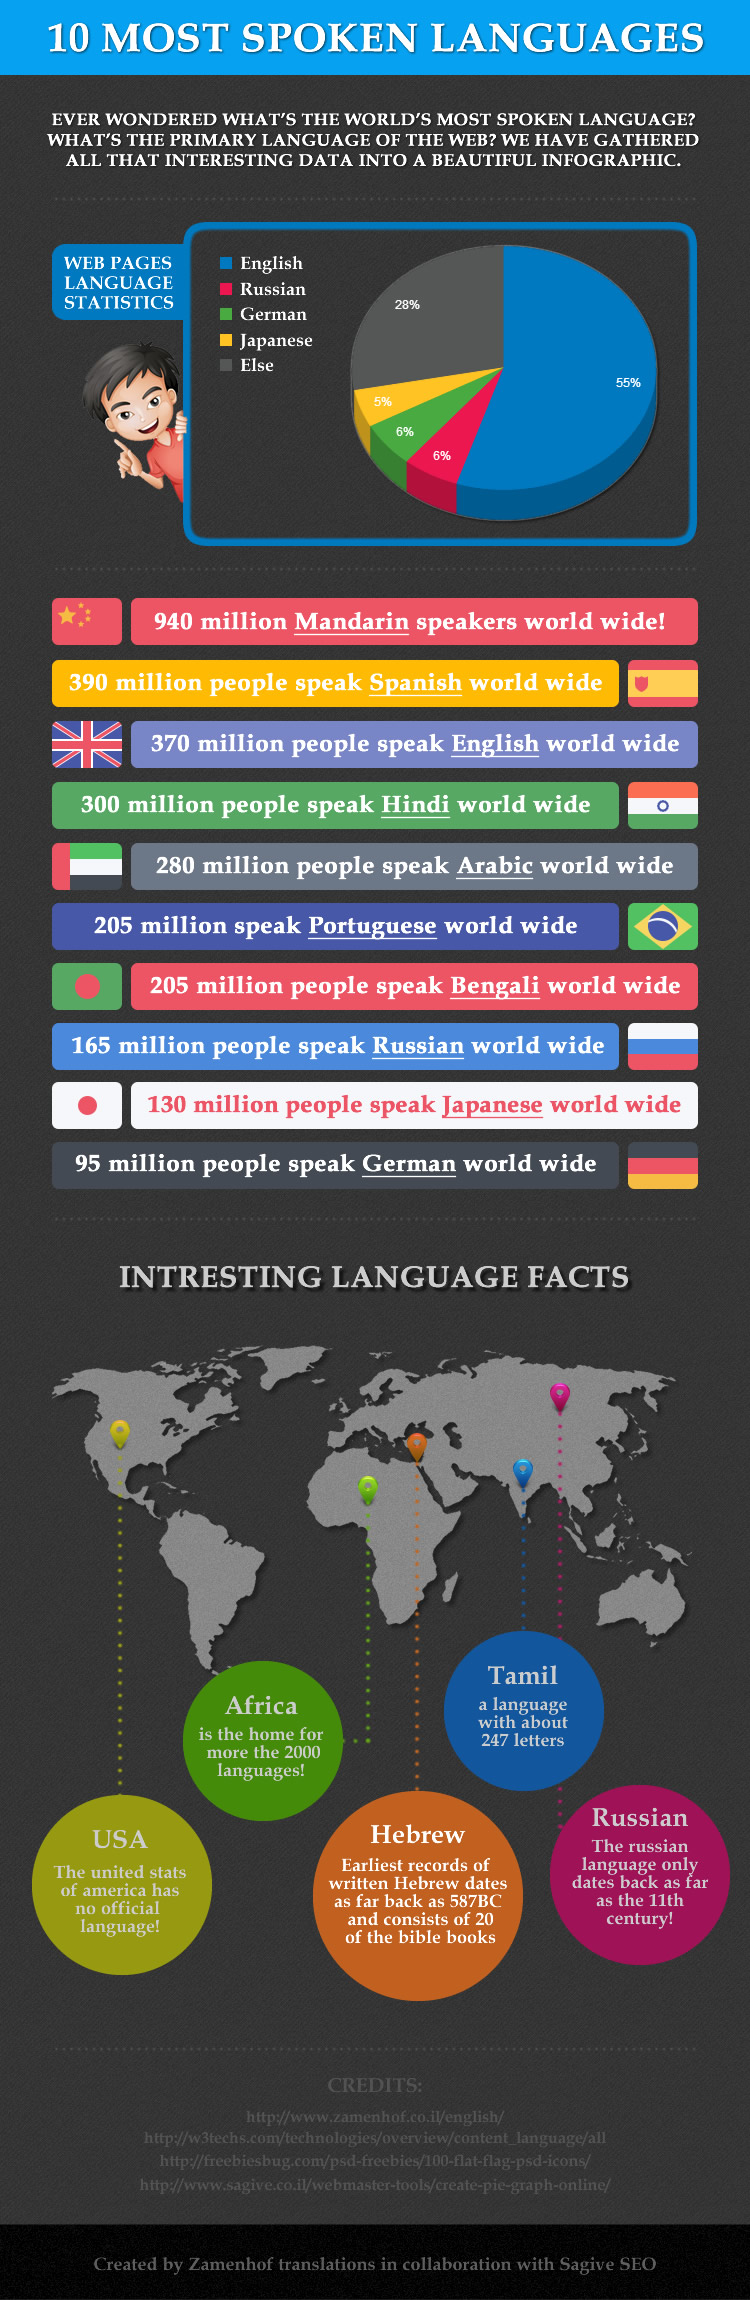 10 most spoken languages in the world